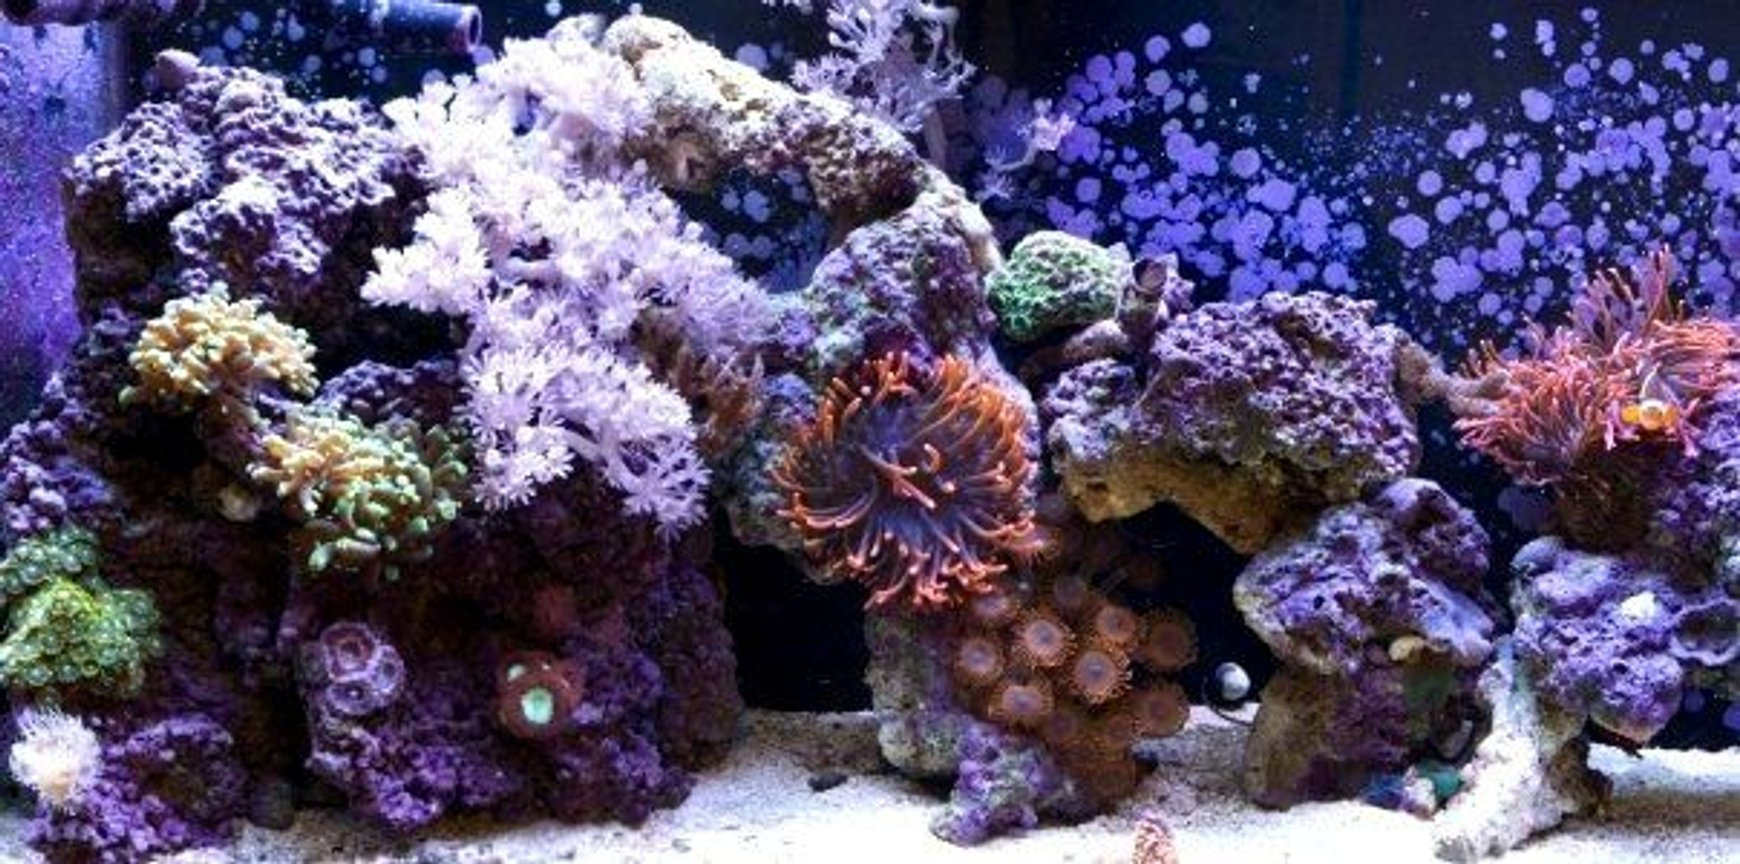 55 gallons reef tank (mostly live coral and fish) - My 55 gallon reef tank a few months ago.